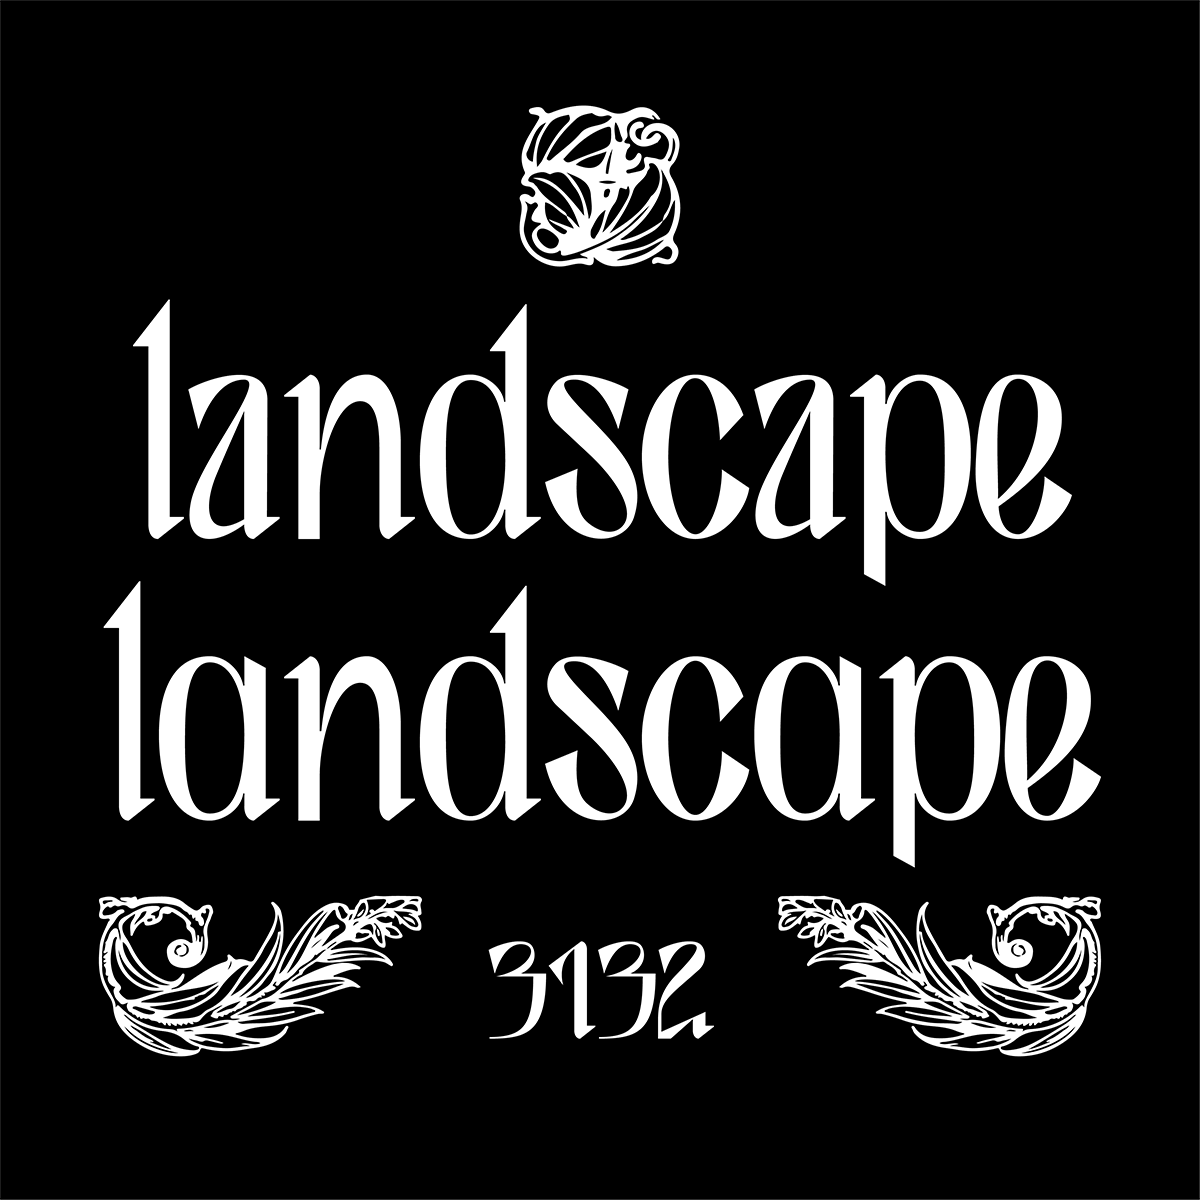 'landscape' set in Durance typefaces' two styles